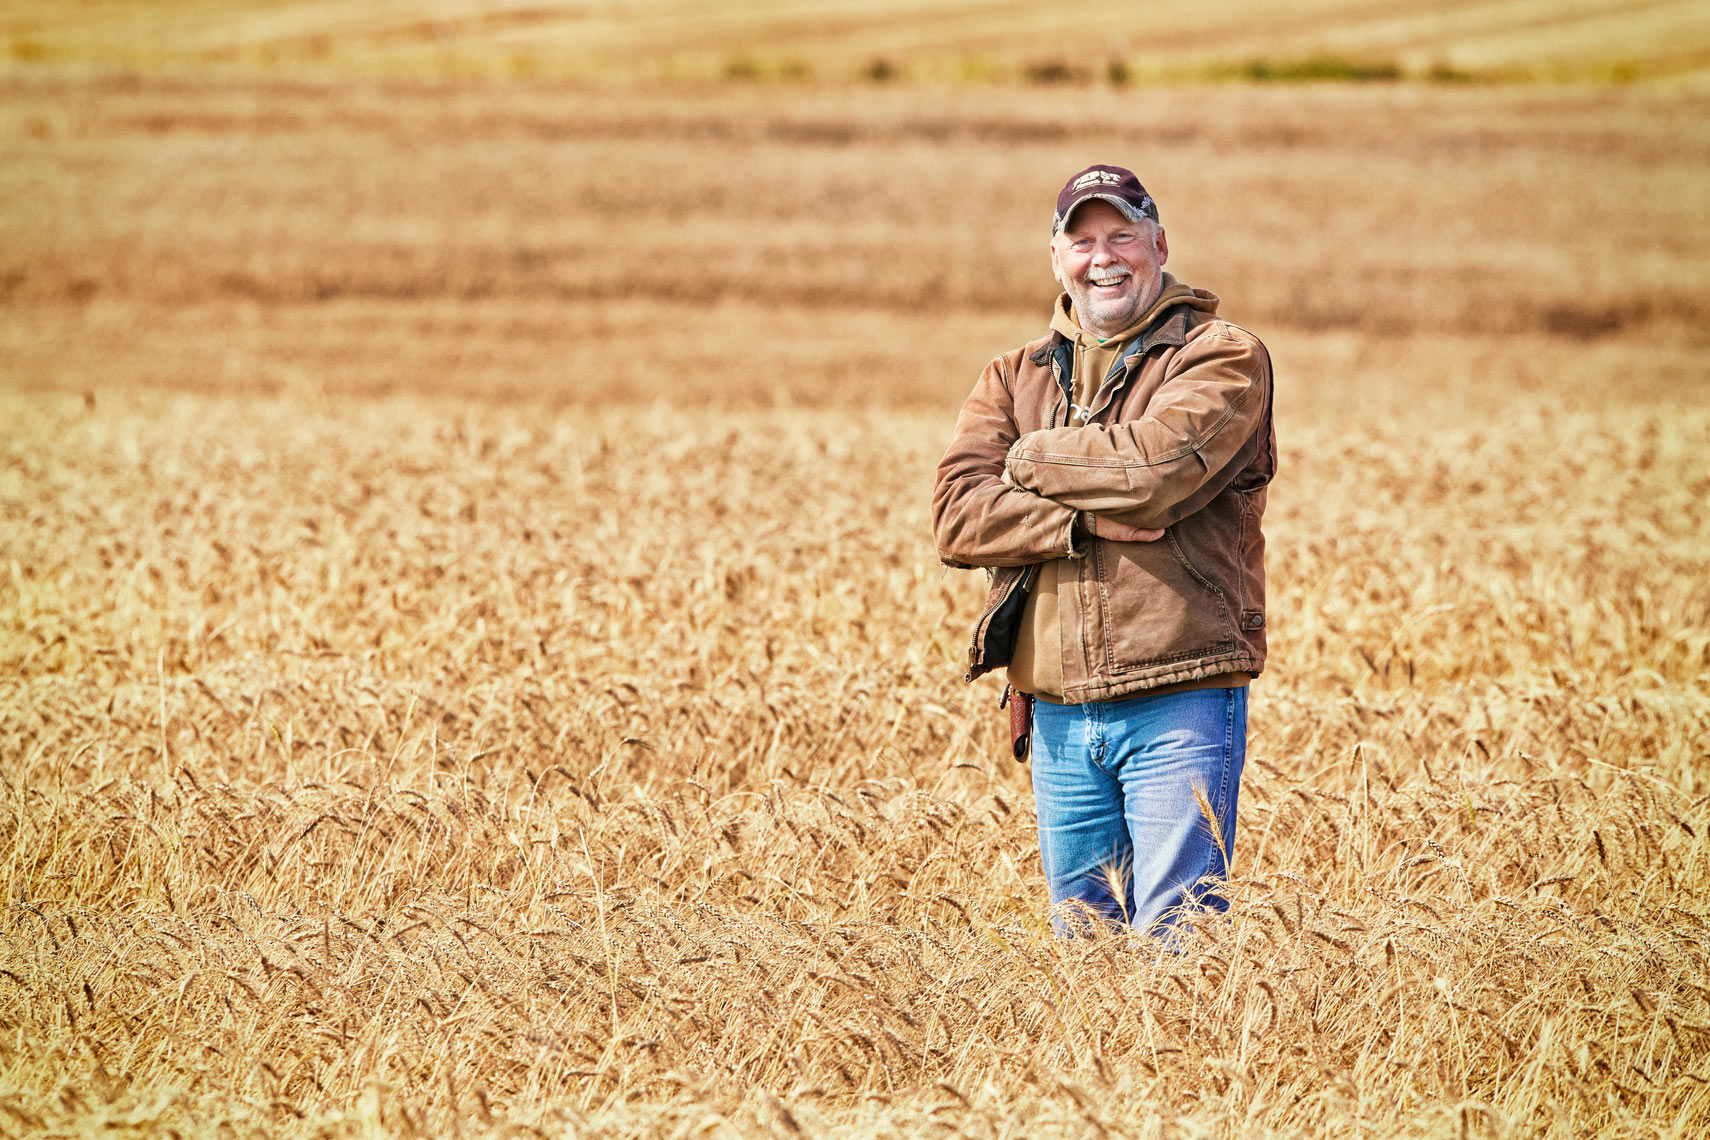 Bremer Bank/Farmer in wheat field/agriculture photography